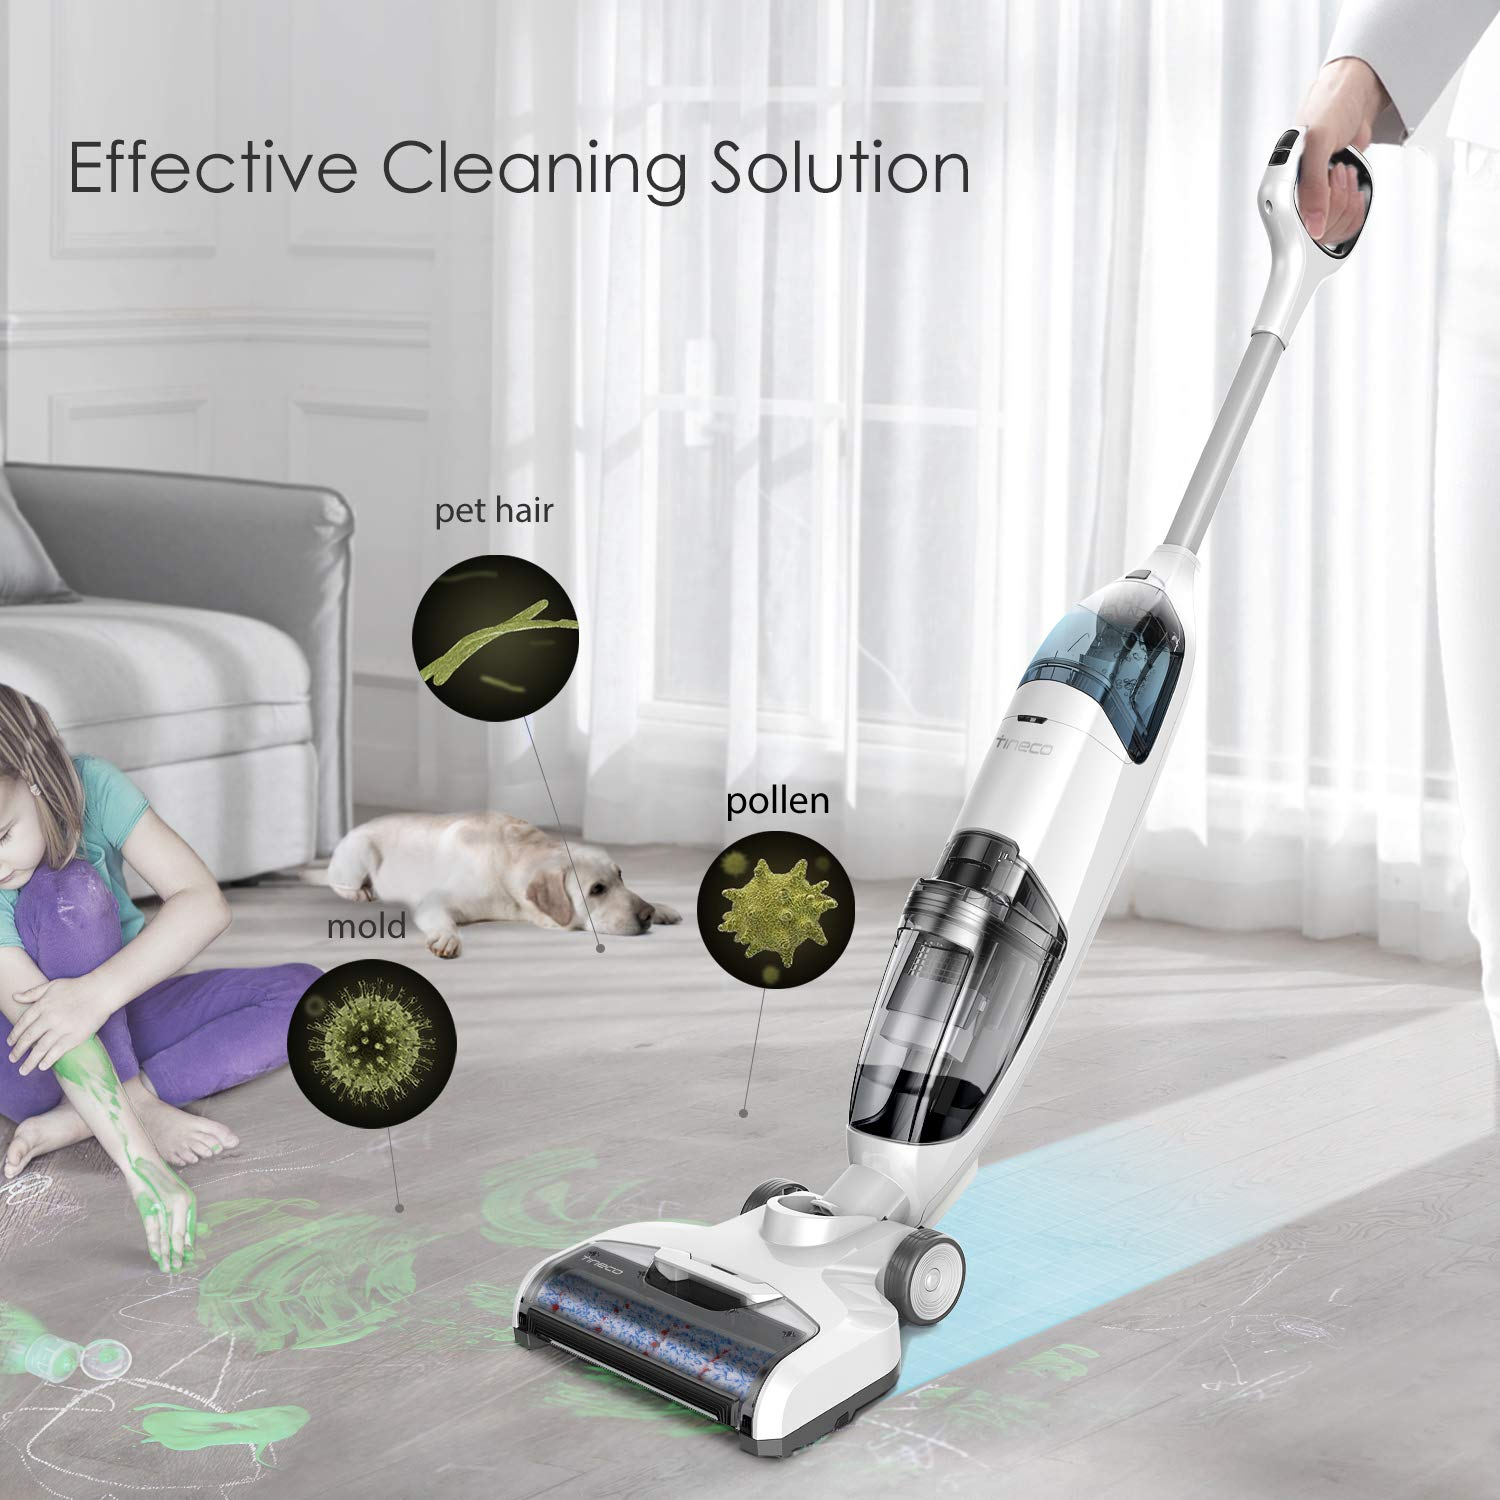 Tineco iFloor Cordless Wet Dry Vacuum Cleaner Powerful and Lightweight Hard Floor Washer with Self-Cleaning Brush by Tineco (Image #4)